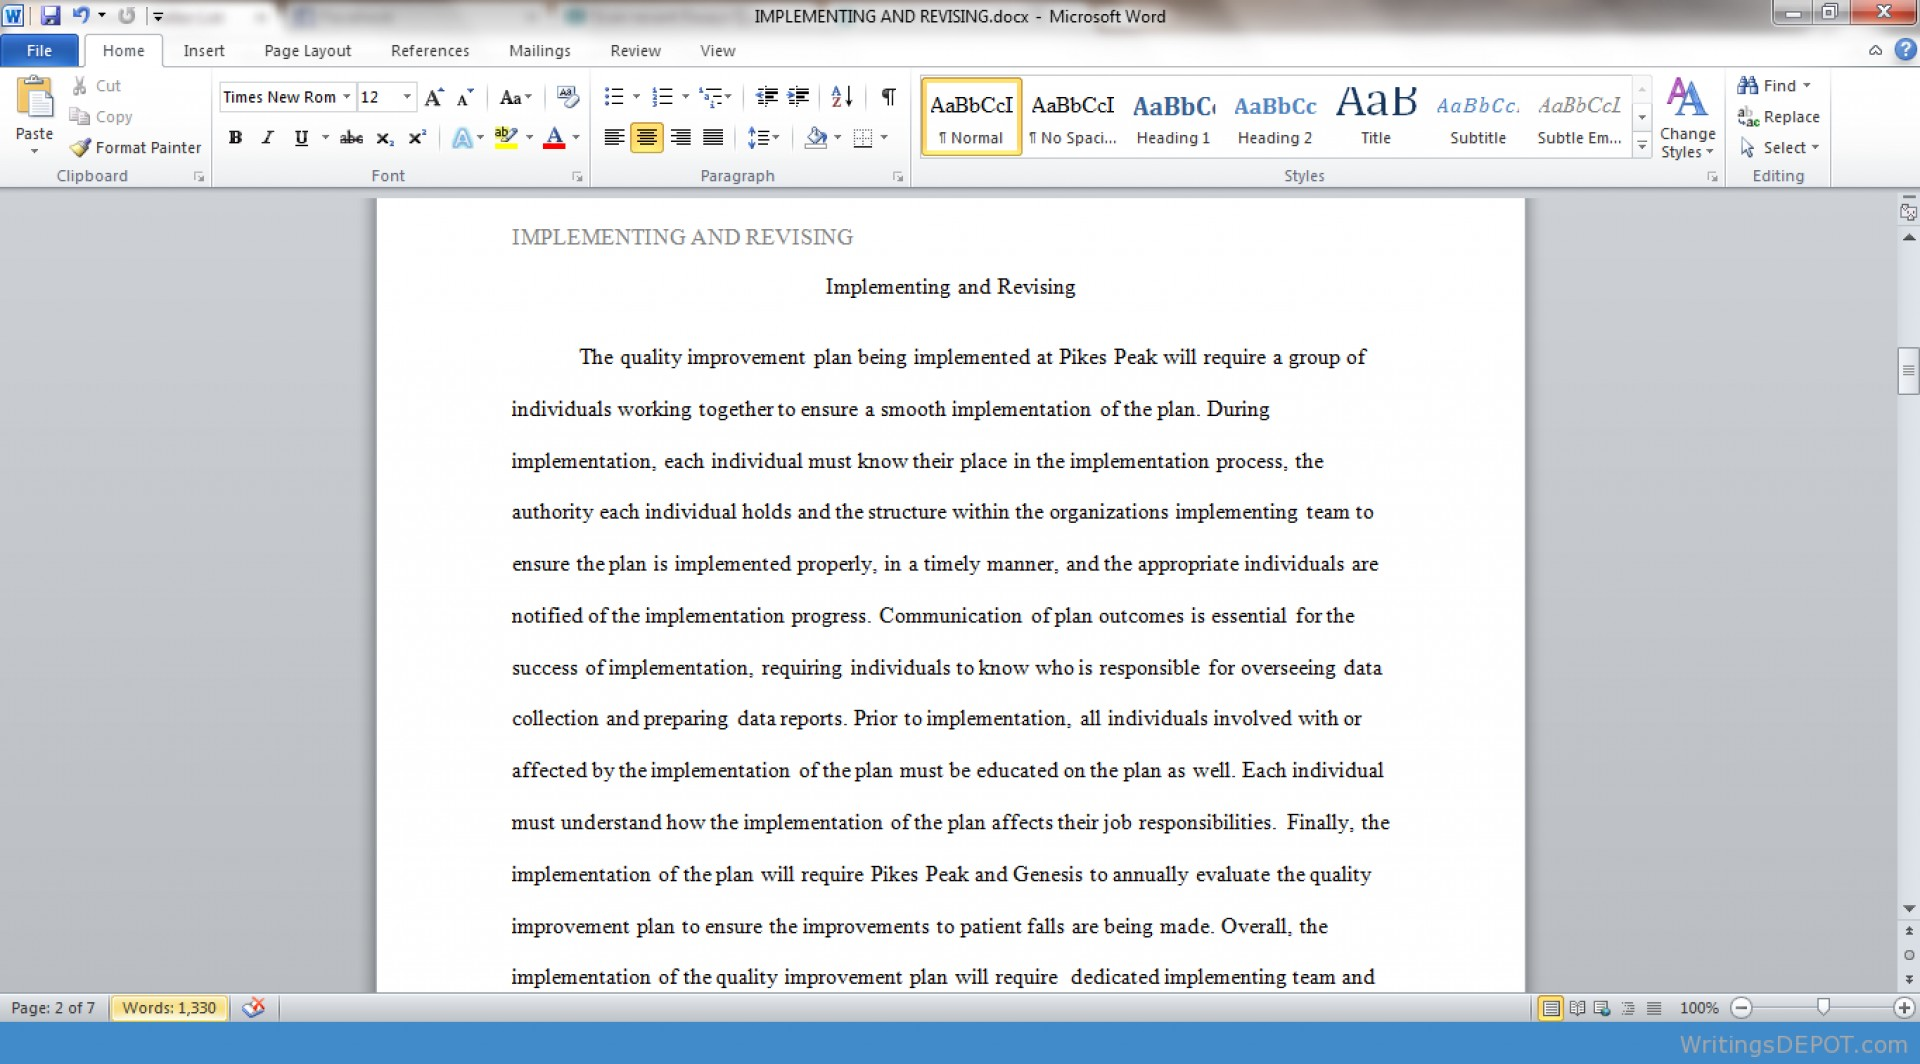 013 Essay Example Screenshot 121 Unforgettable 700 Word 500-700 Sample Pages 1920